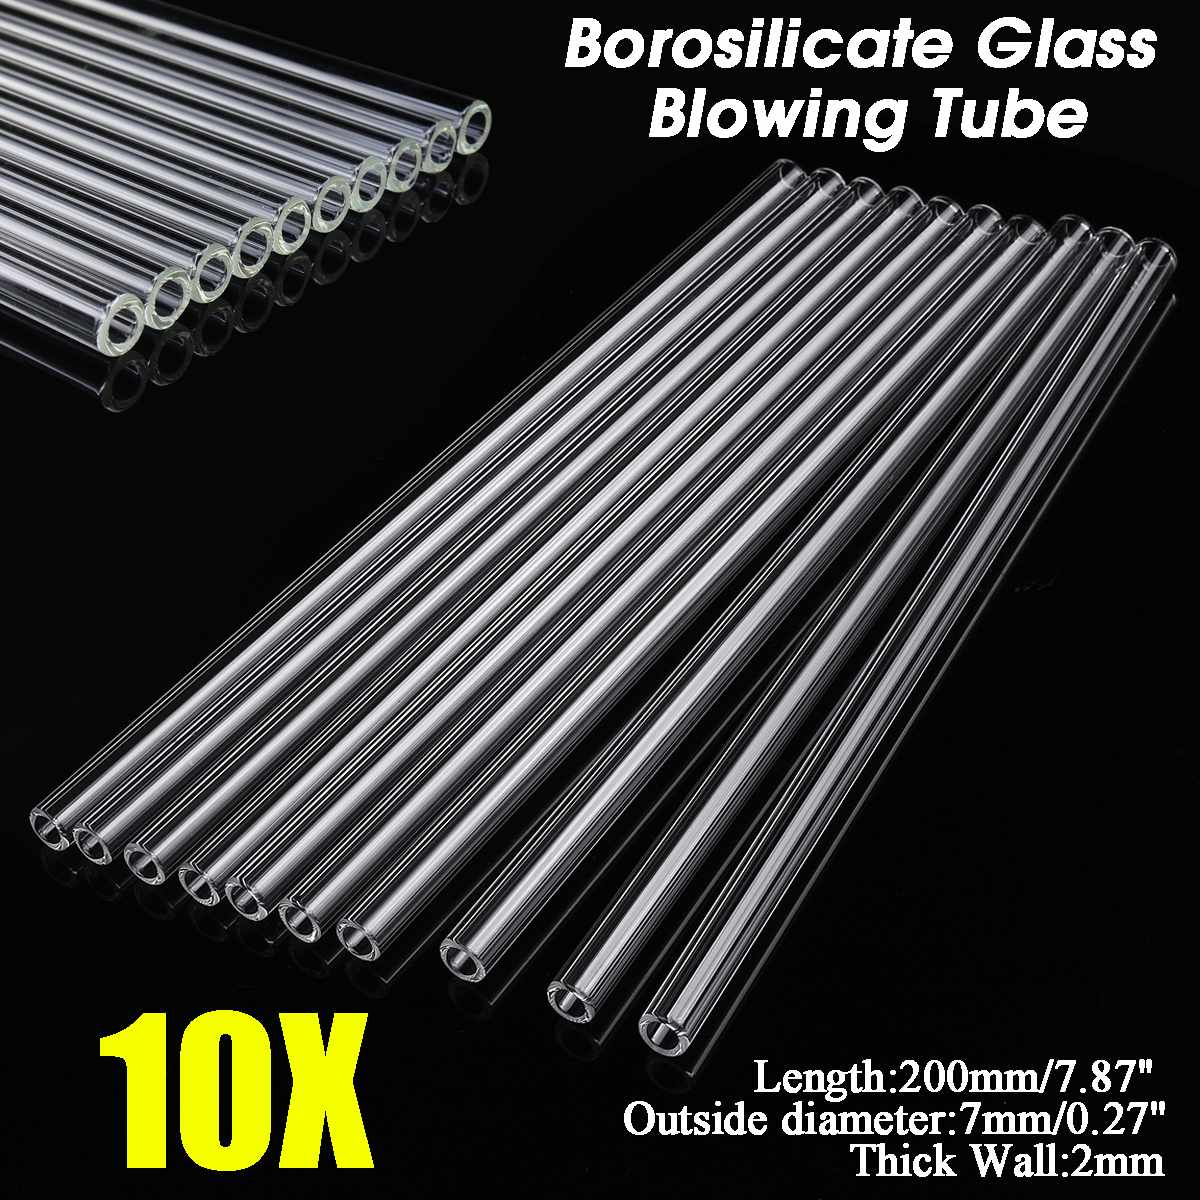 10Pcs Wholesale 200x7x2mm Thick Transparent Wall Borosilicate Glass Blowing Tube Mixer Rod For School Lab Chemical Experiment